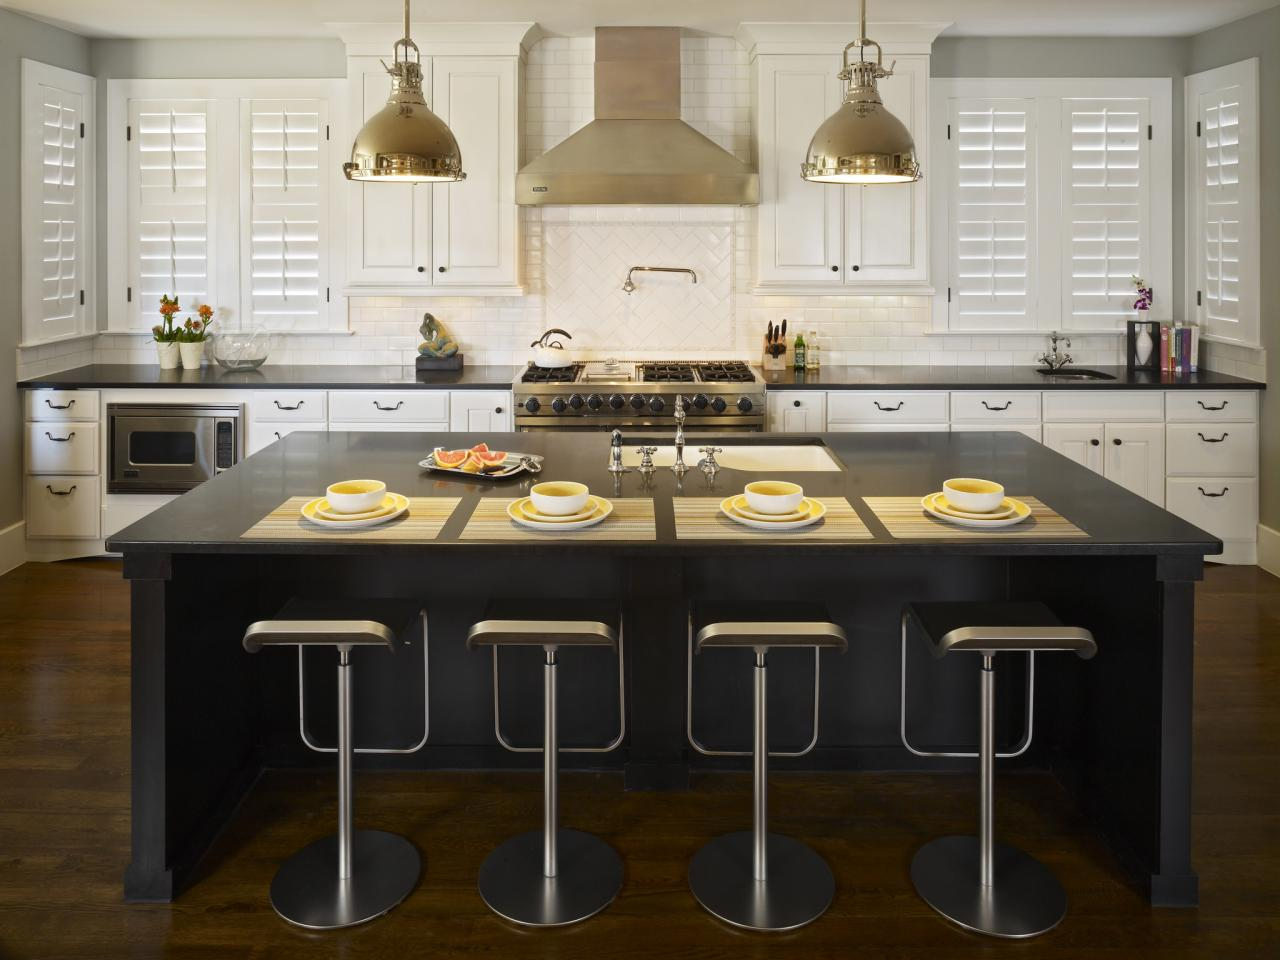 Black kitchen islands pictures ideas tips from hgtv hgtv for Black kitchen design